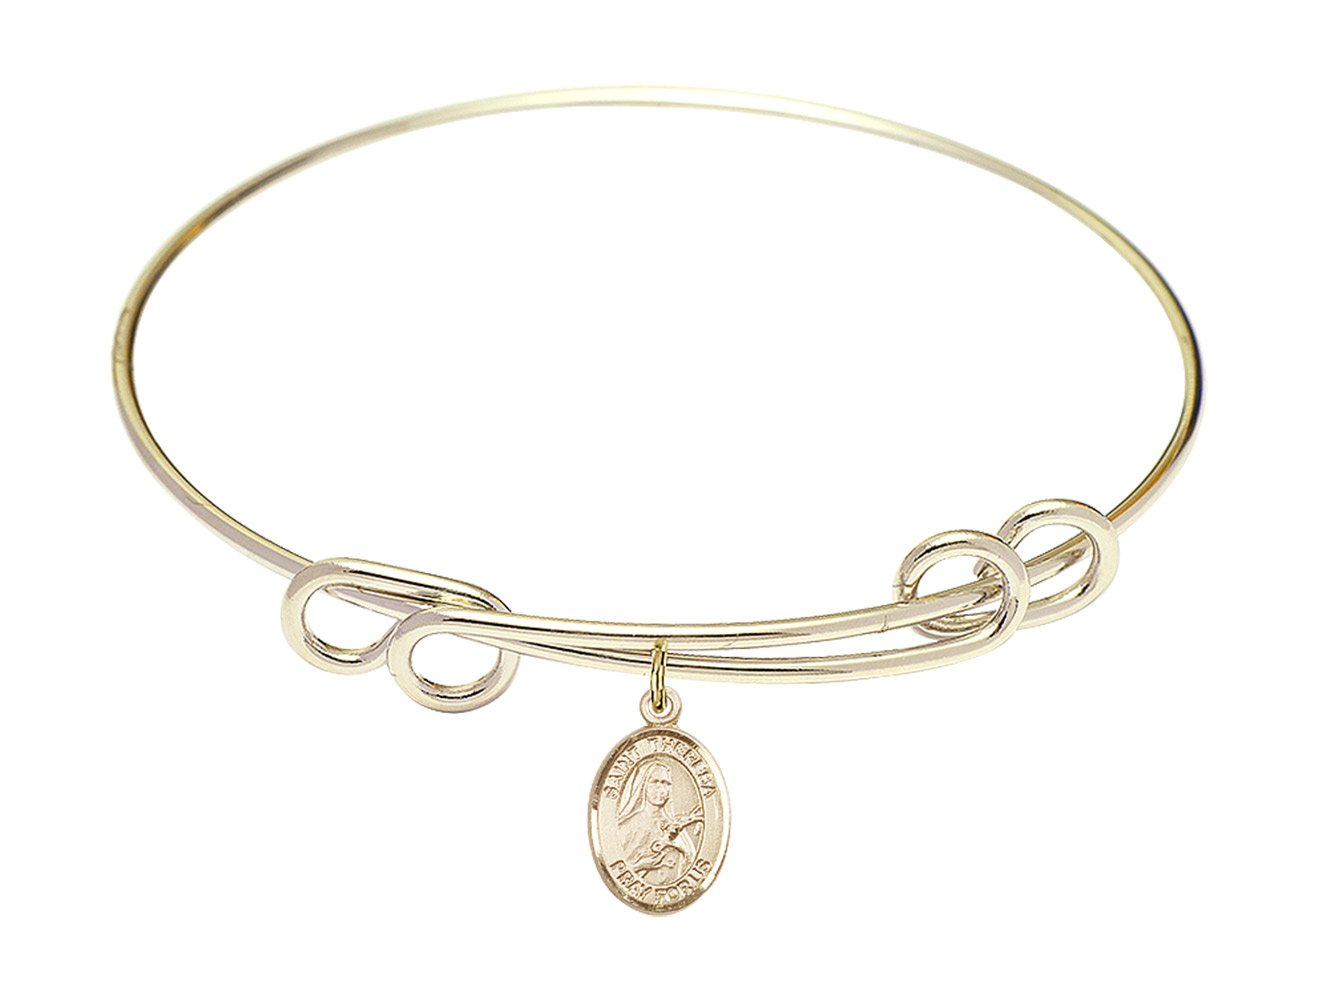 8 1/2 inch Round Double Loop Bangle Bracelet w/St. Theresa in Gold-Filled